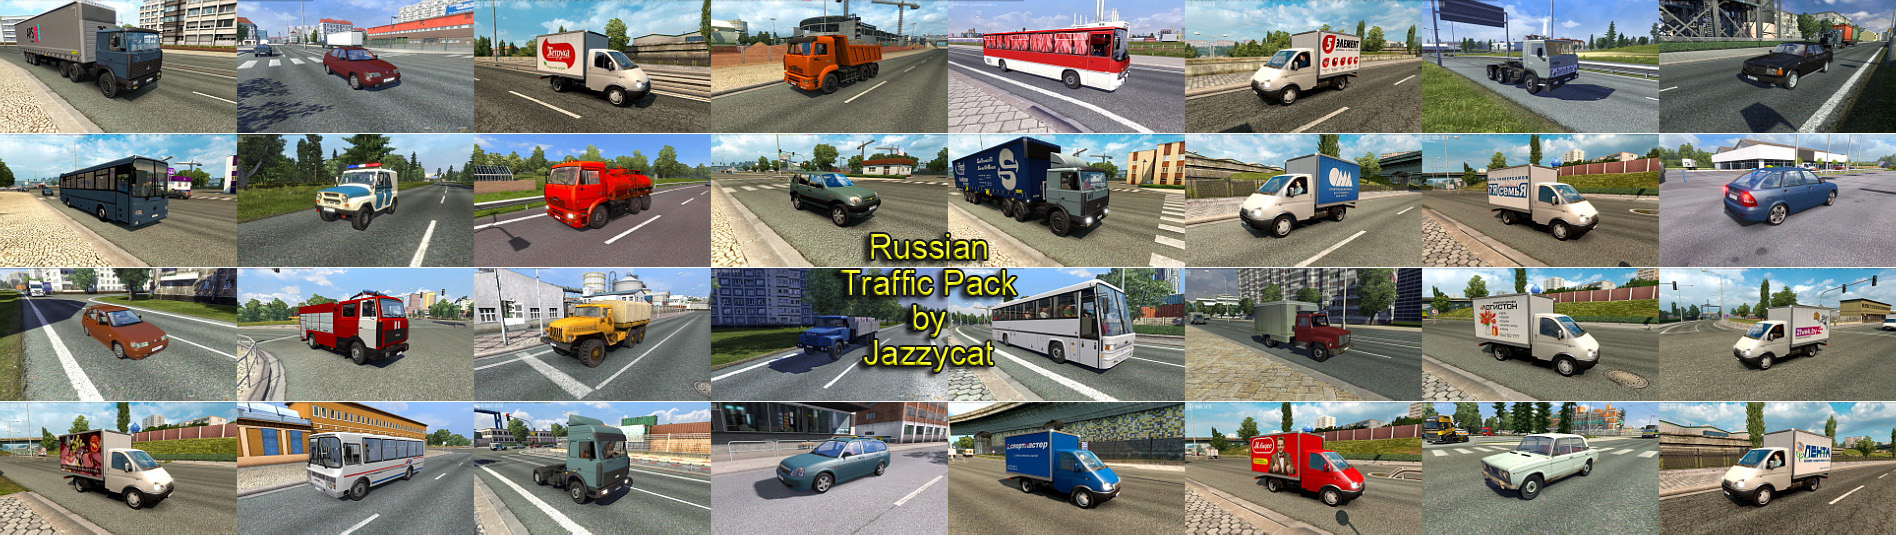 Russian Traffic Pack Mod by Jazzycat v 1 9 ETS2 - Euro Truck